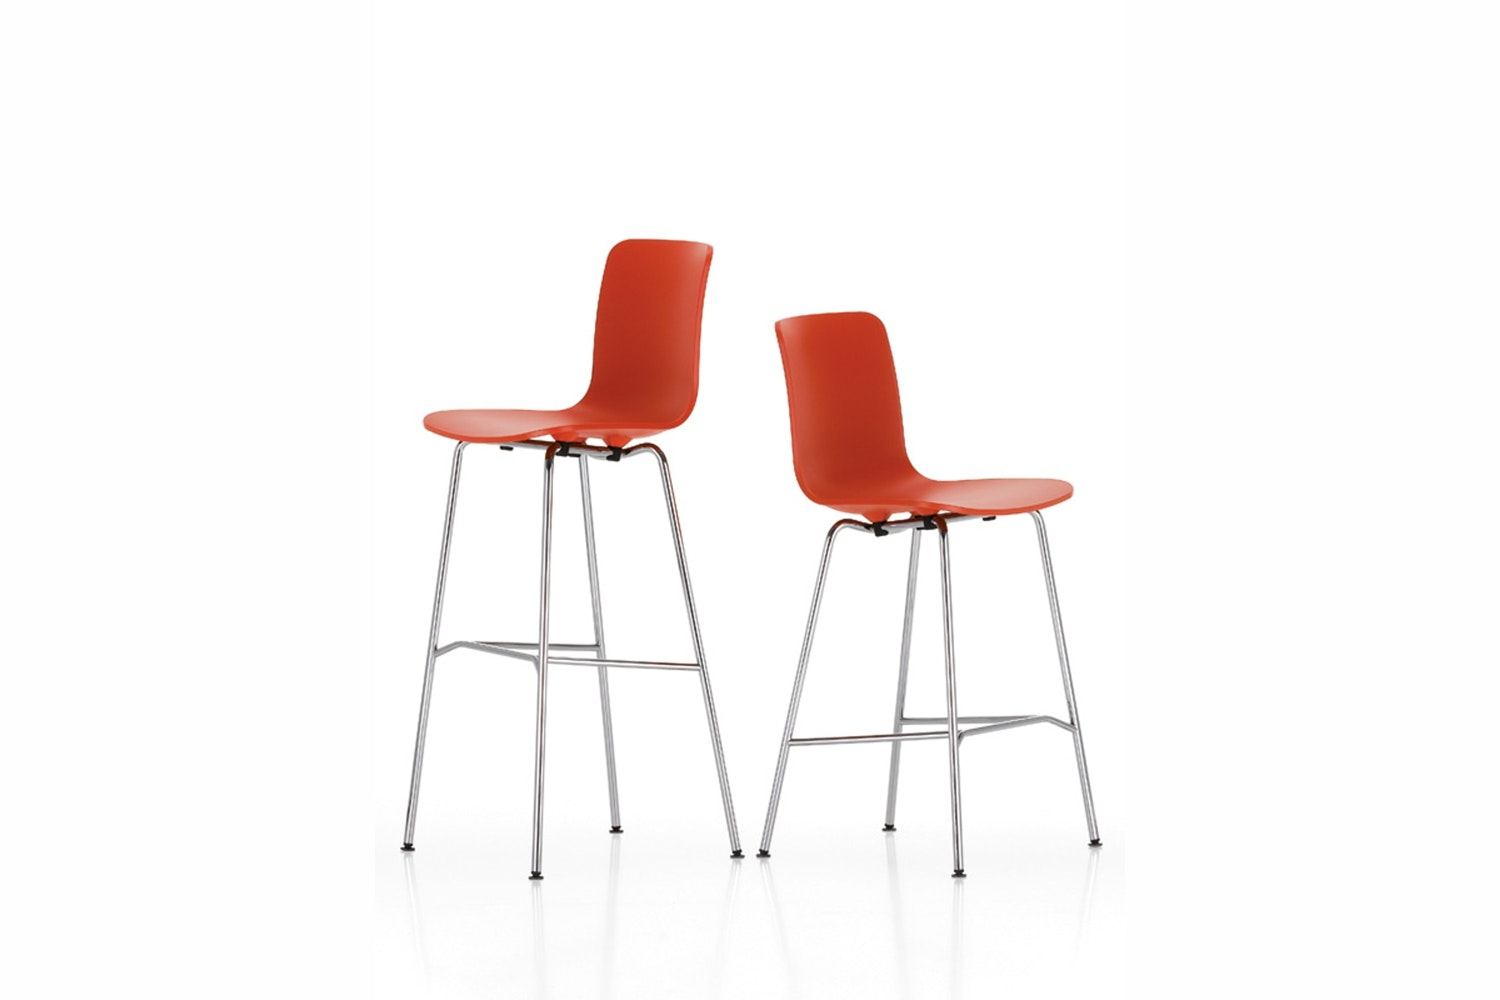 HAL Stool by Jasper Morrison for Vitra